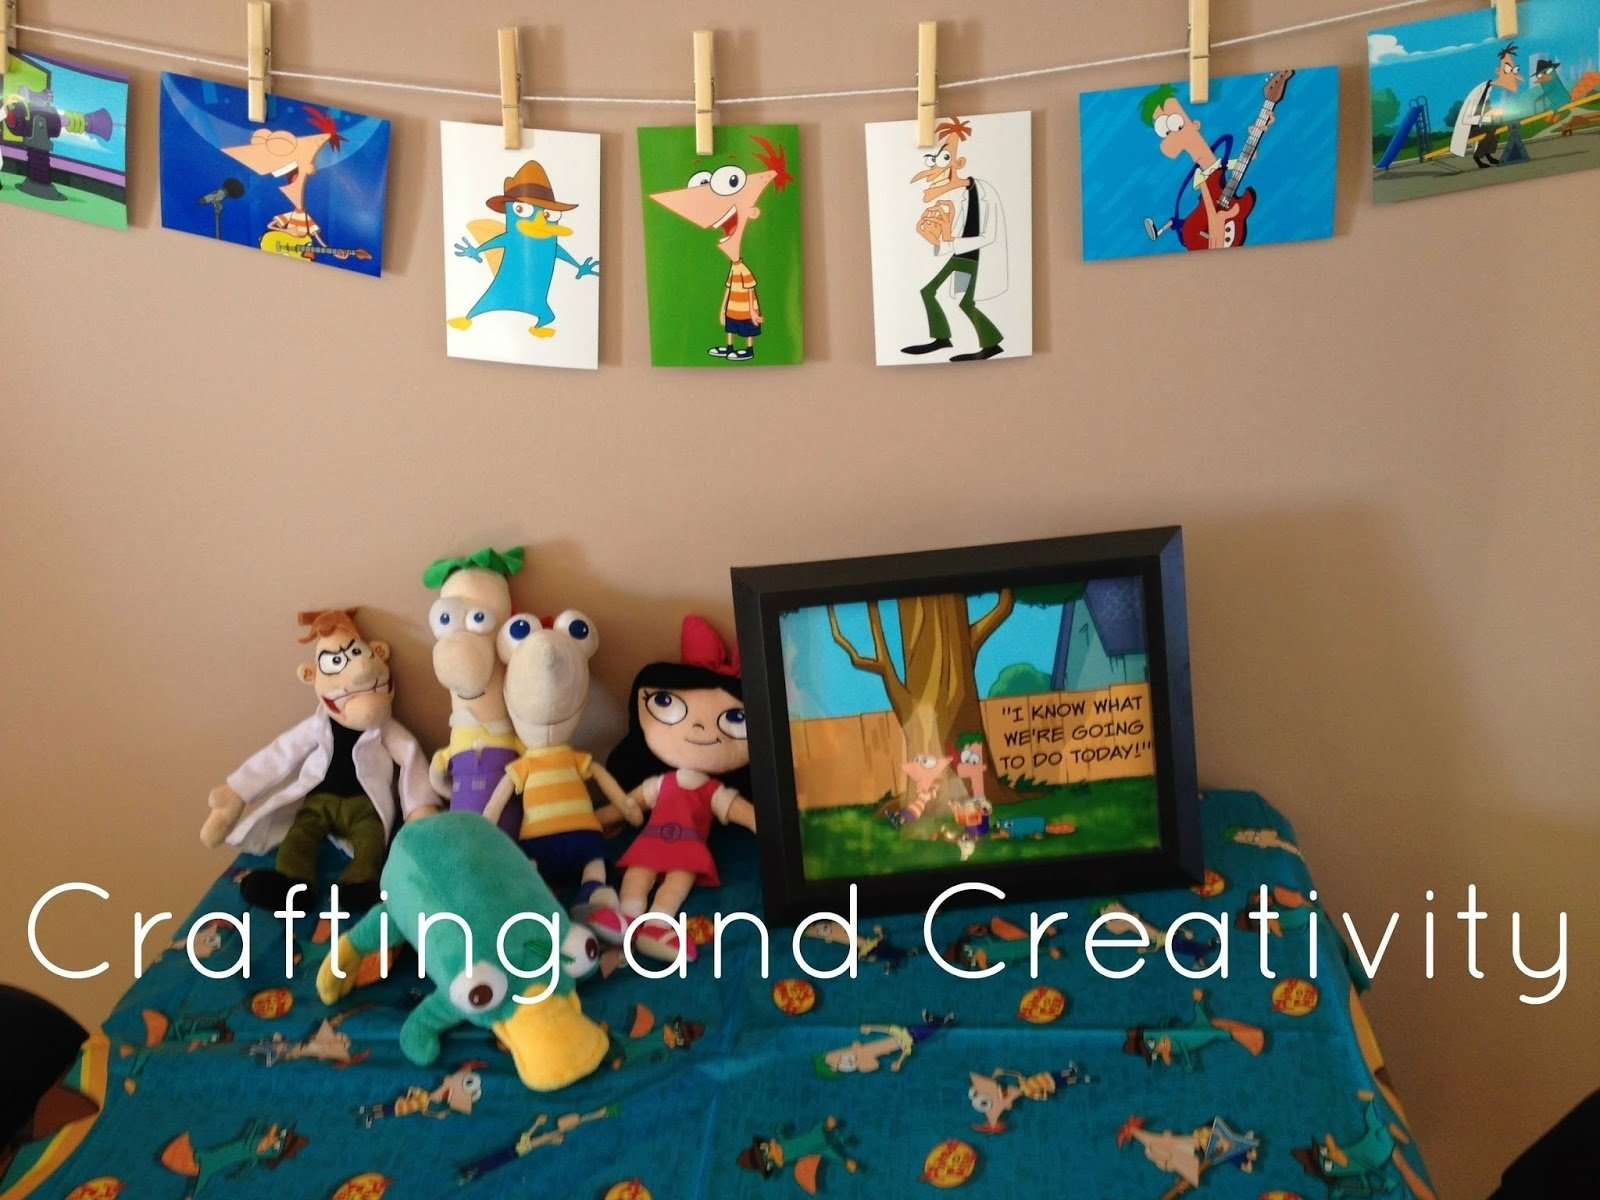 10 Most Popular Phineas And Ferb Party Ideas crafting and creativity my sons 7th birthday party phineas and 2020